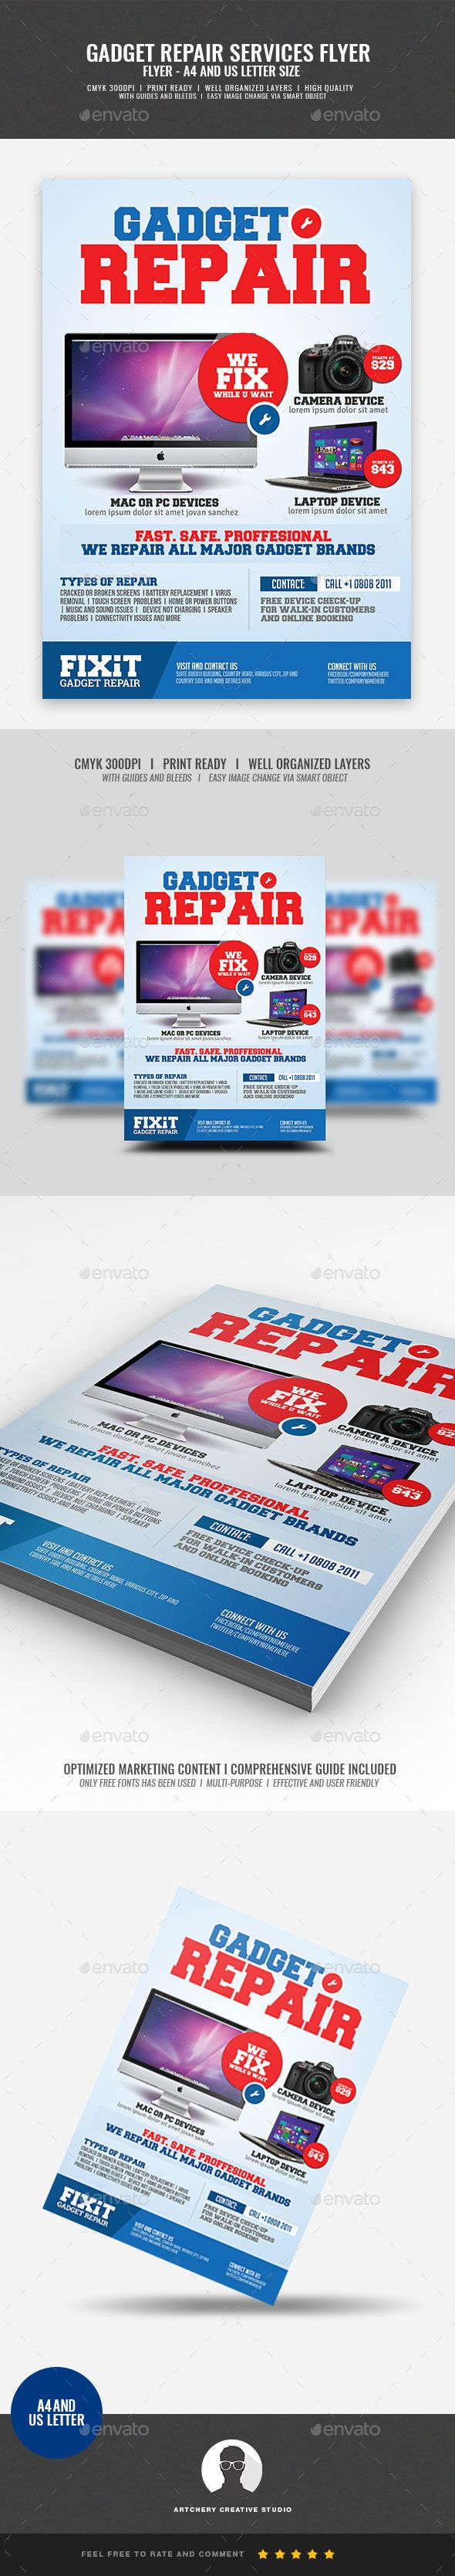 Best Flyer Design Images On   Flyer Design Flyer